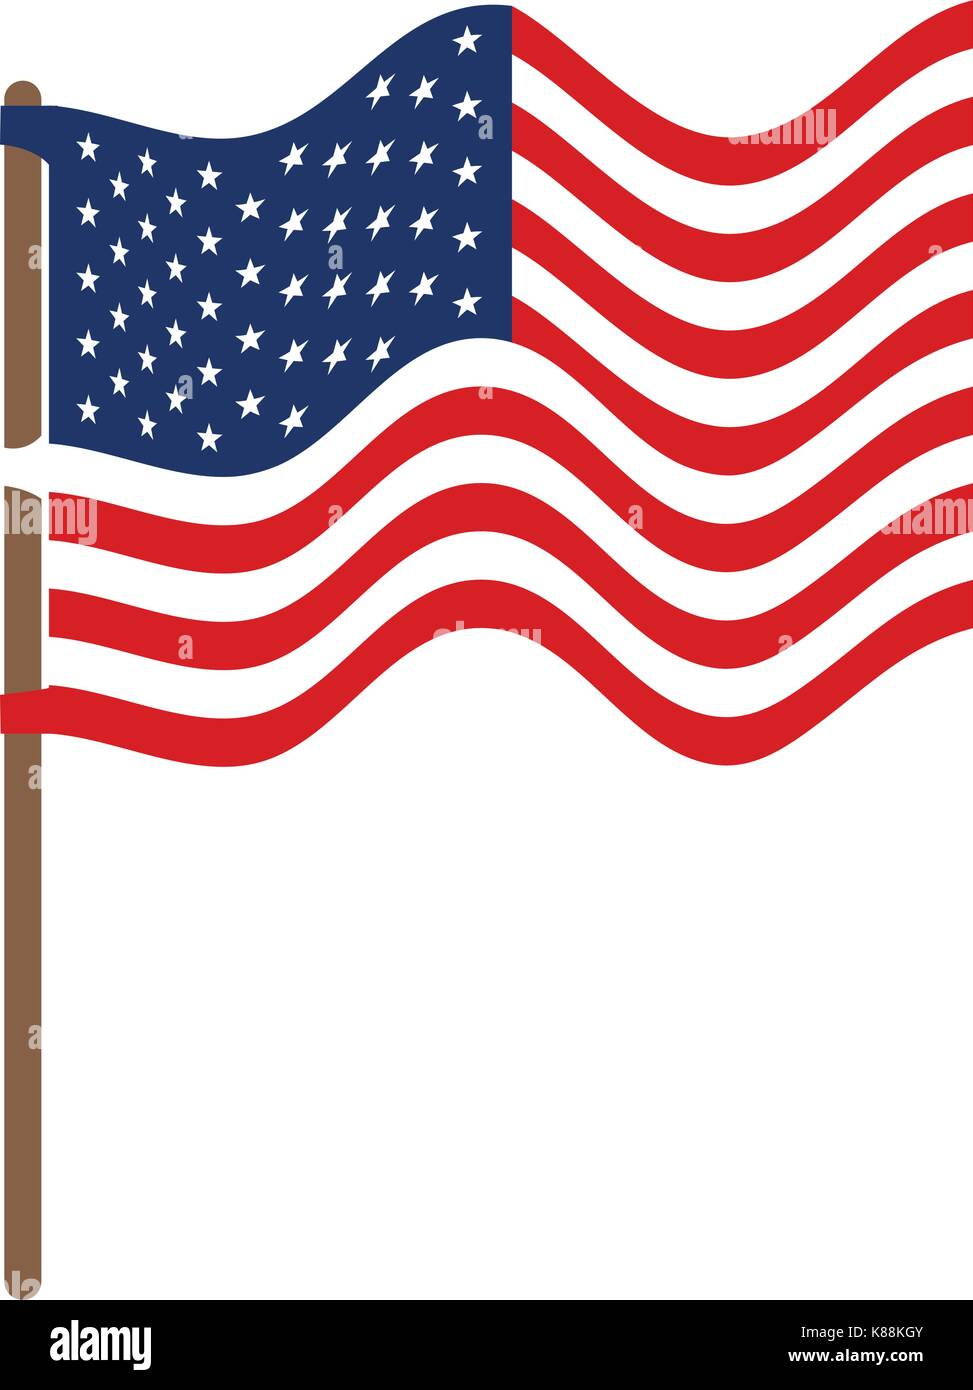 flag united states of america in flagpole waving and colorful silhouette without contour - Stock Image